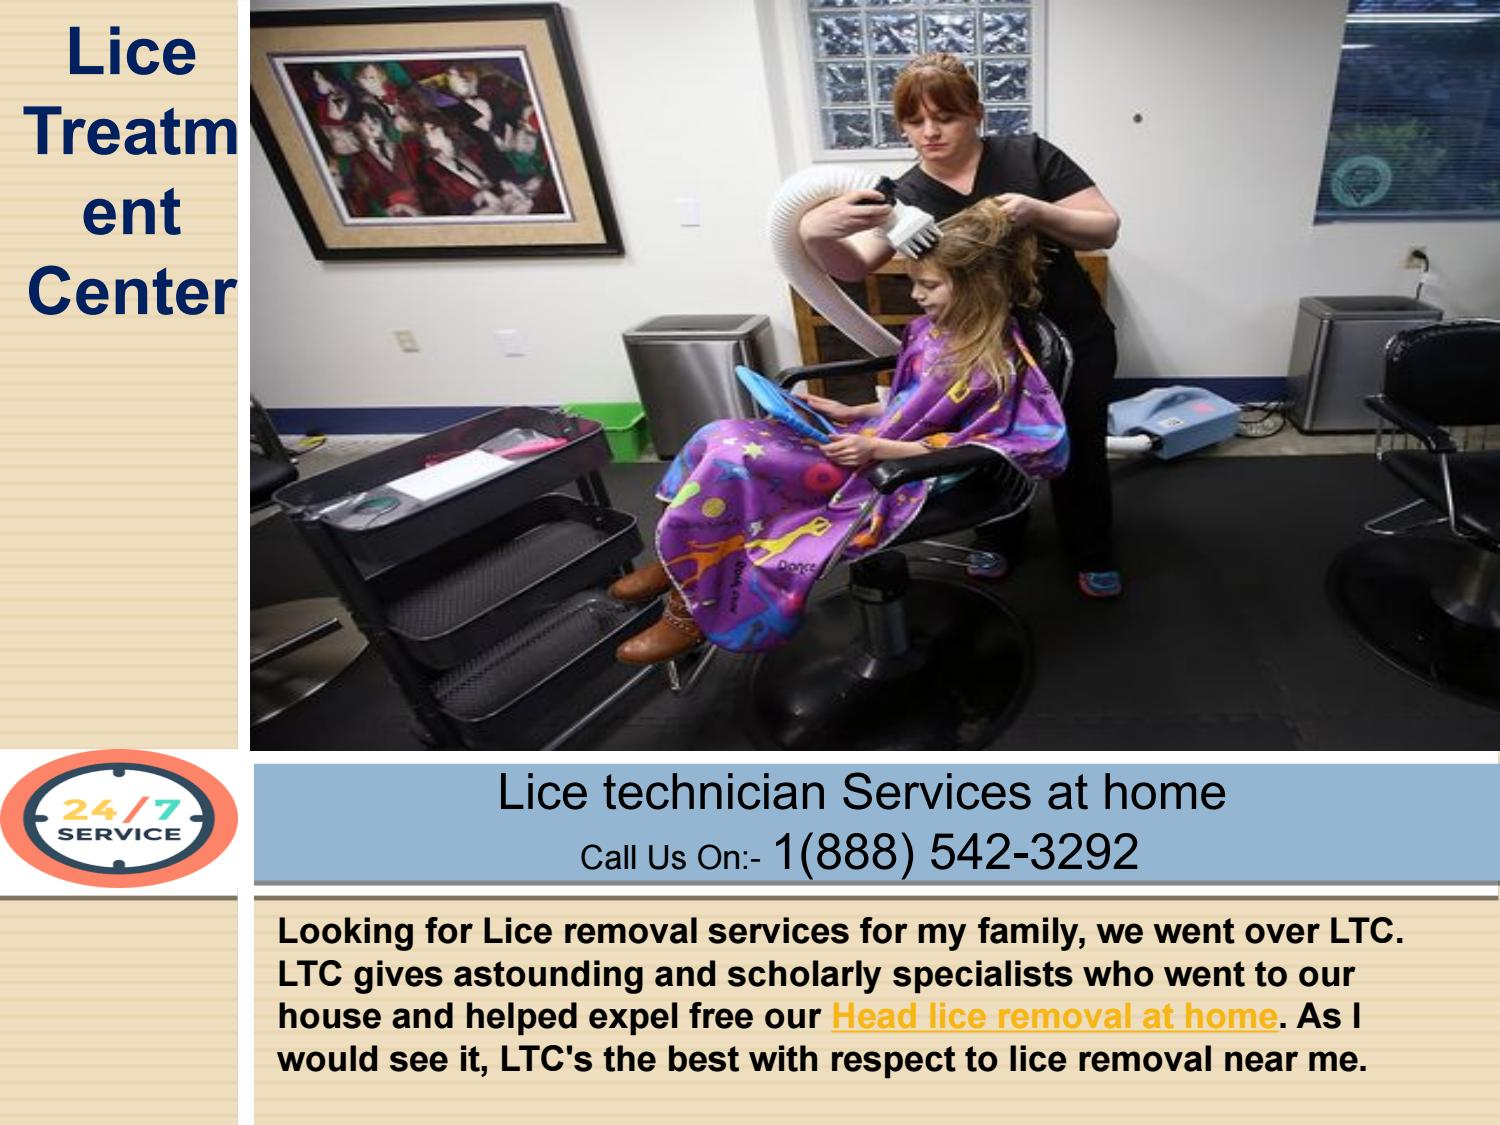 Looking For The Best Head lice removal at home by